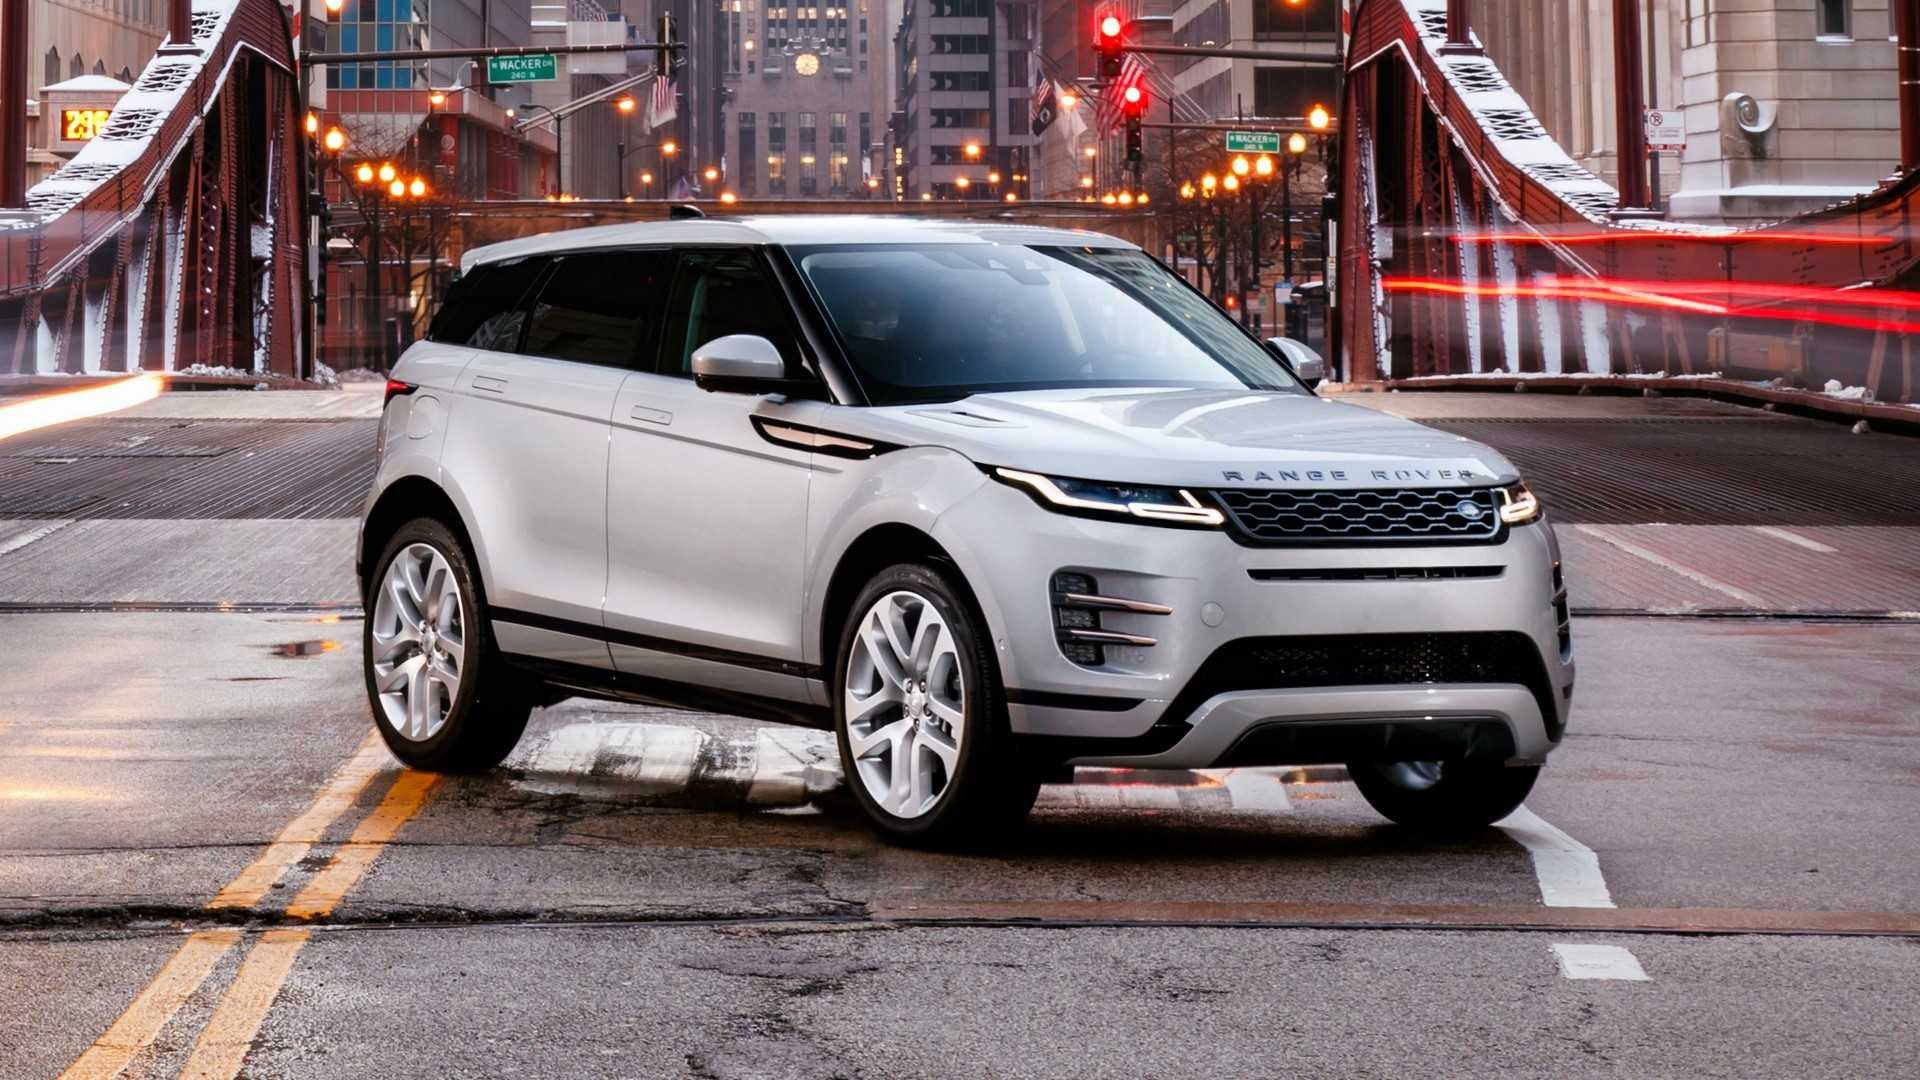 Range Rover Evoke >> Land Rover Range Rover Evoque News And Reviews Motor1 Com